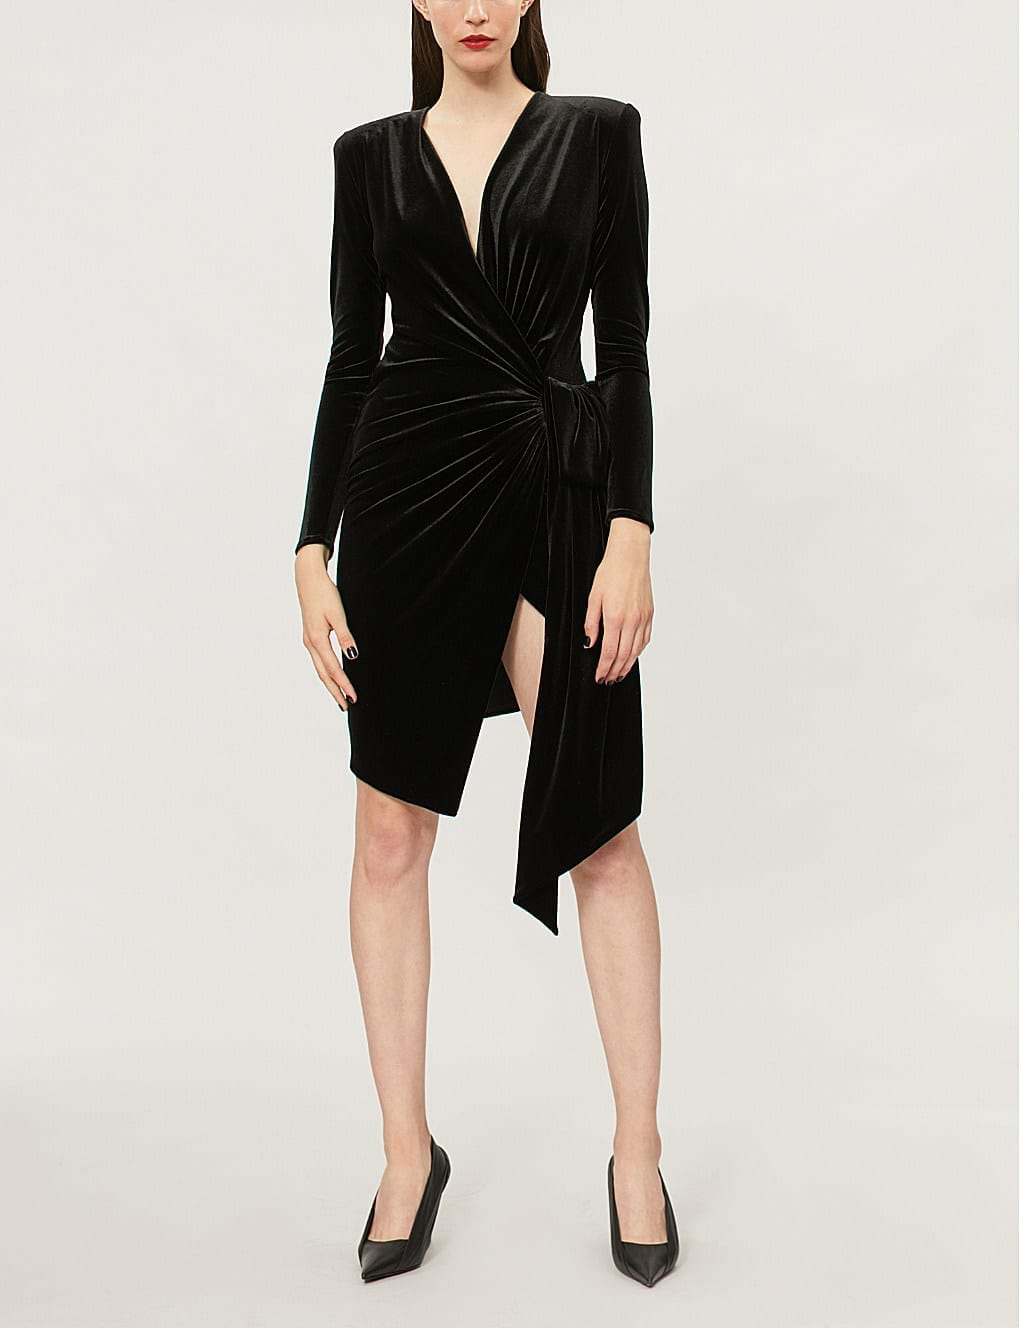 ALEXANDRE VAUTHIER Wrap Over Velvet Black Dress